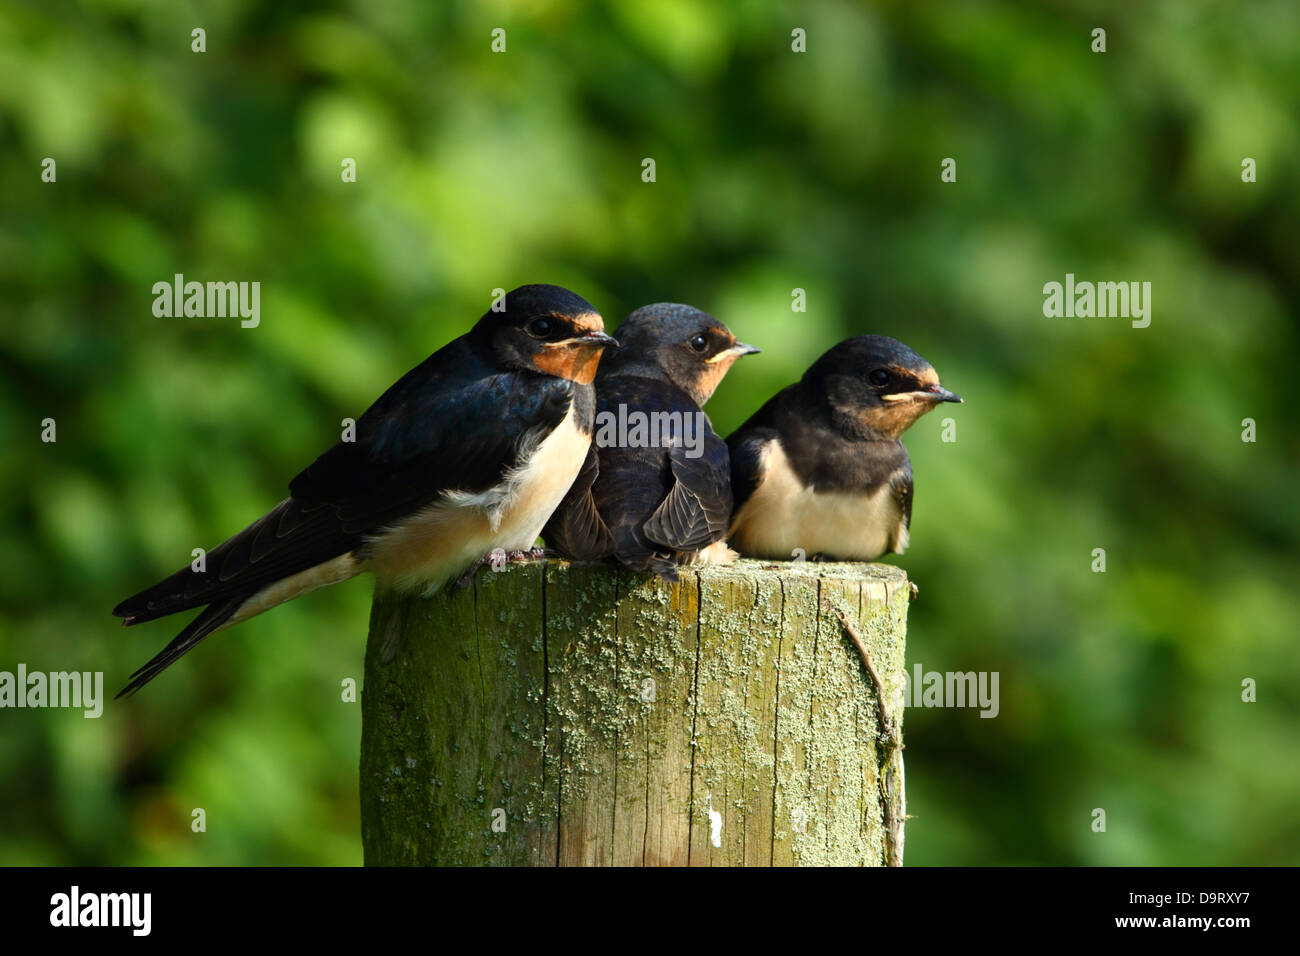 baby swallows waiting to be fed - Stock Image